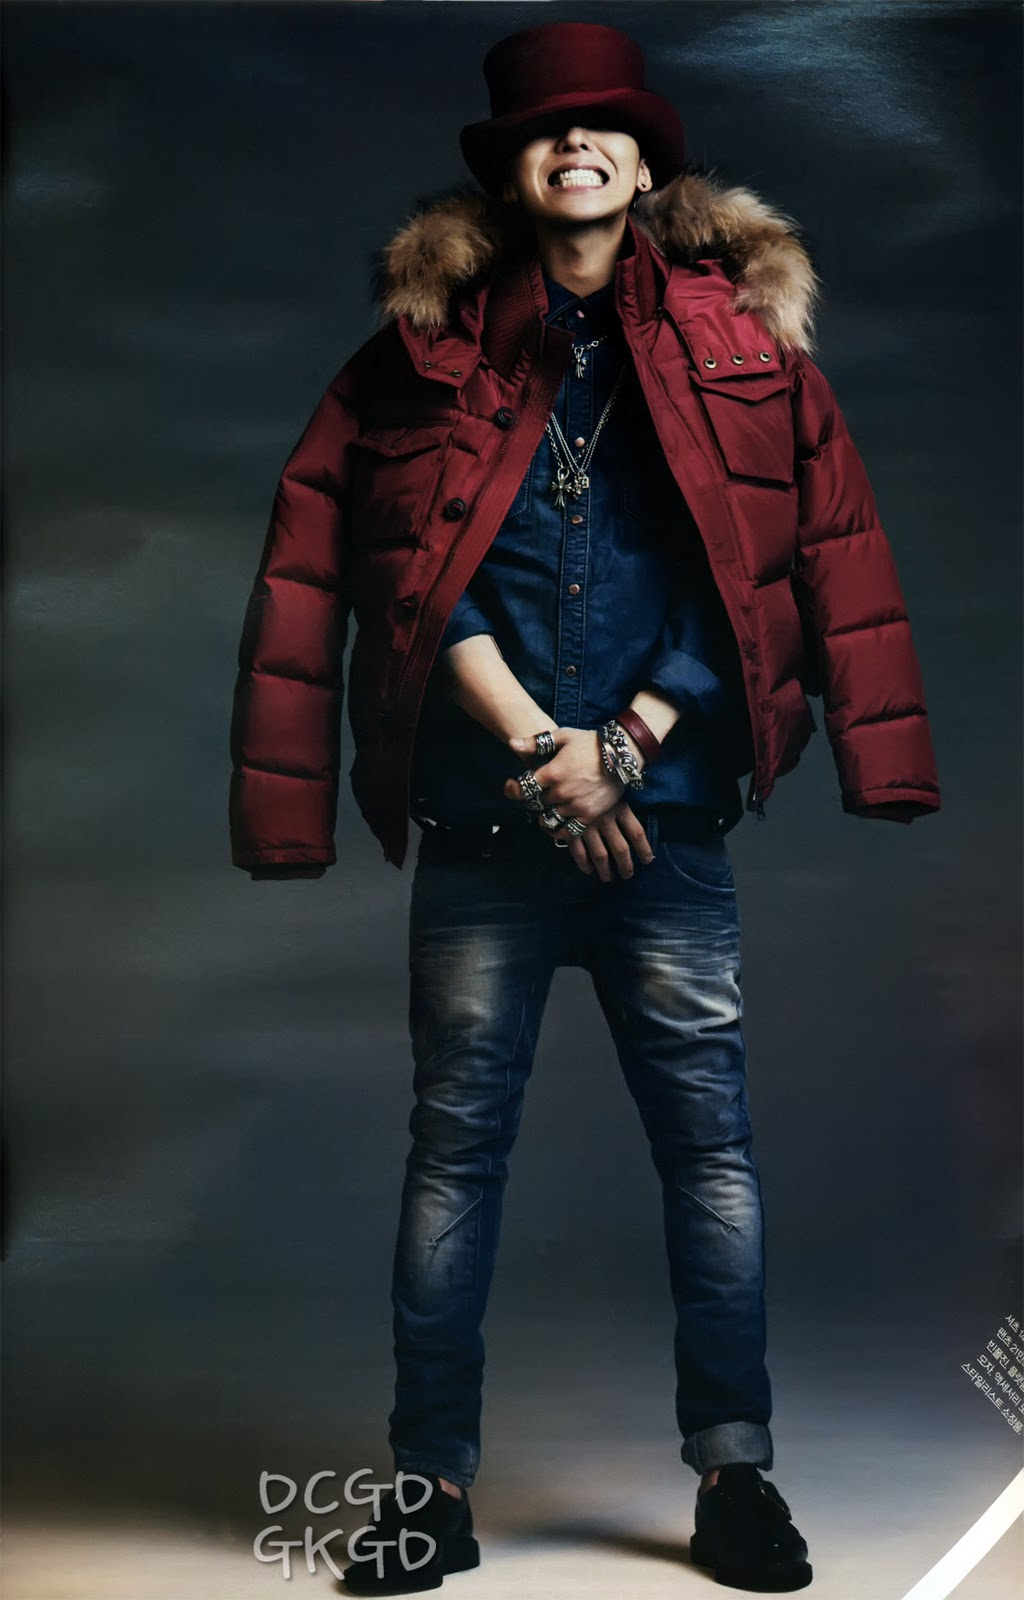 GDragon's Imagins Gdragon-1st-look-magazine-scans_094